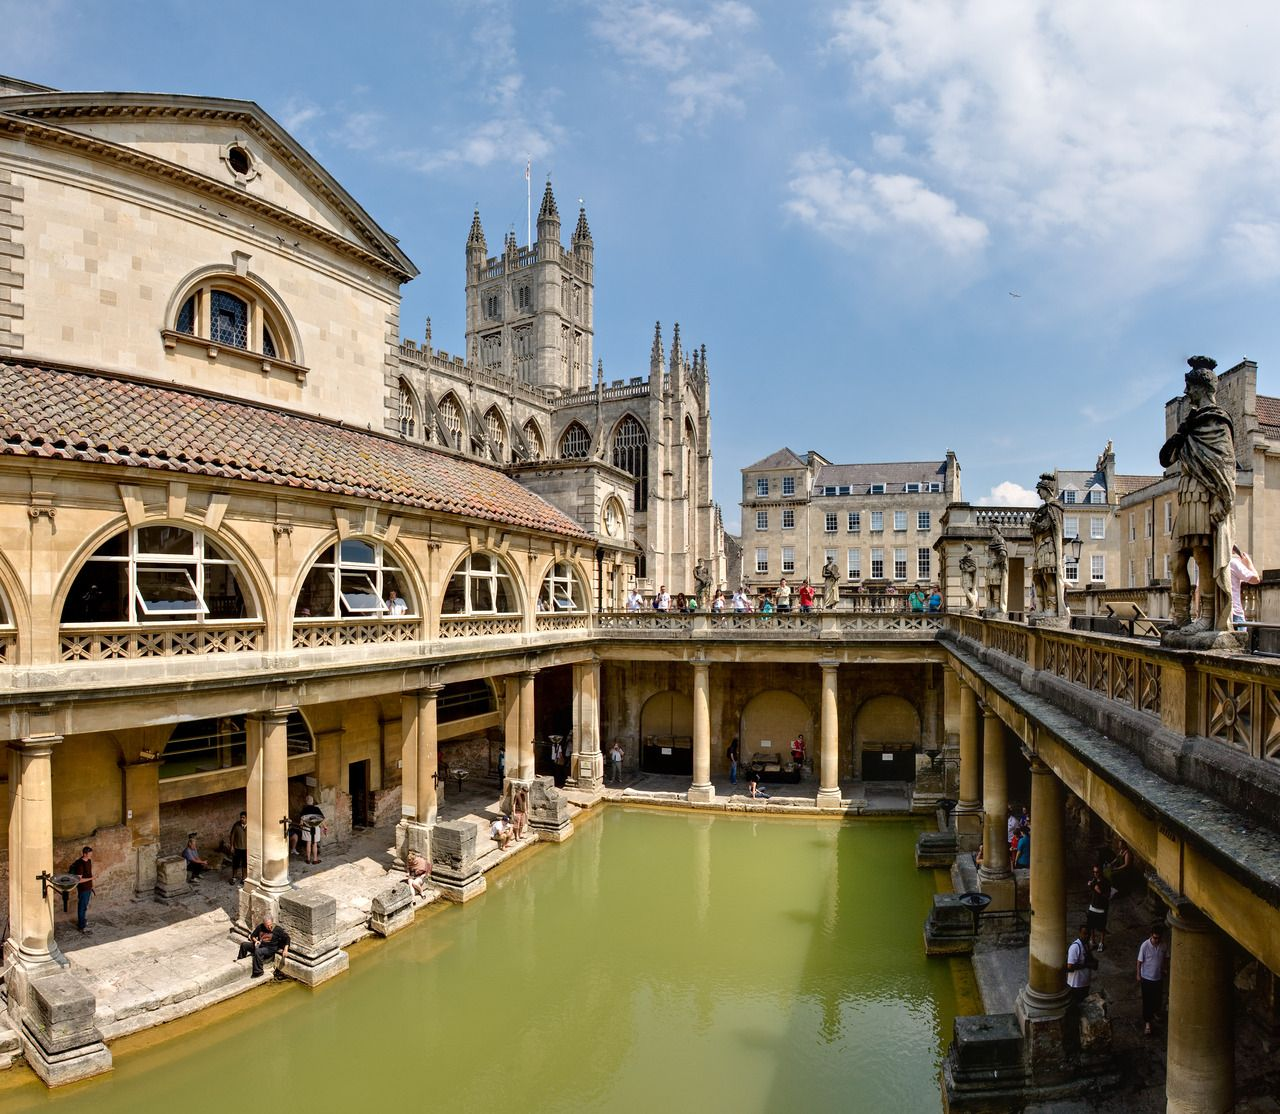 Toured The Beautiful City Of Bath England Uk And Seen The Inside